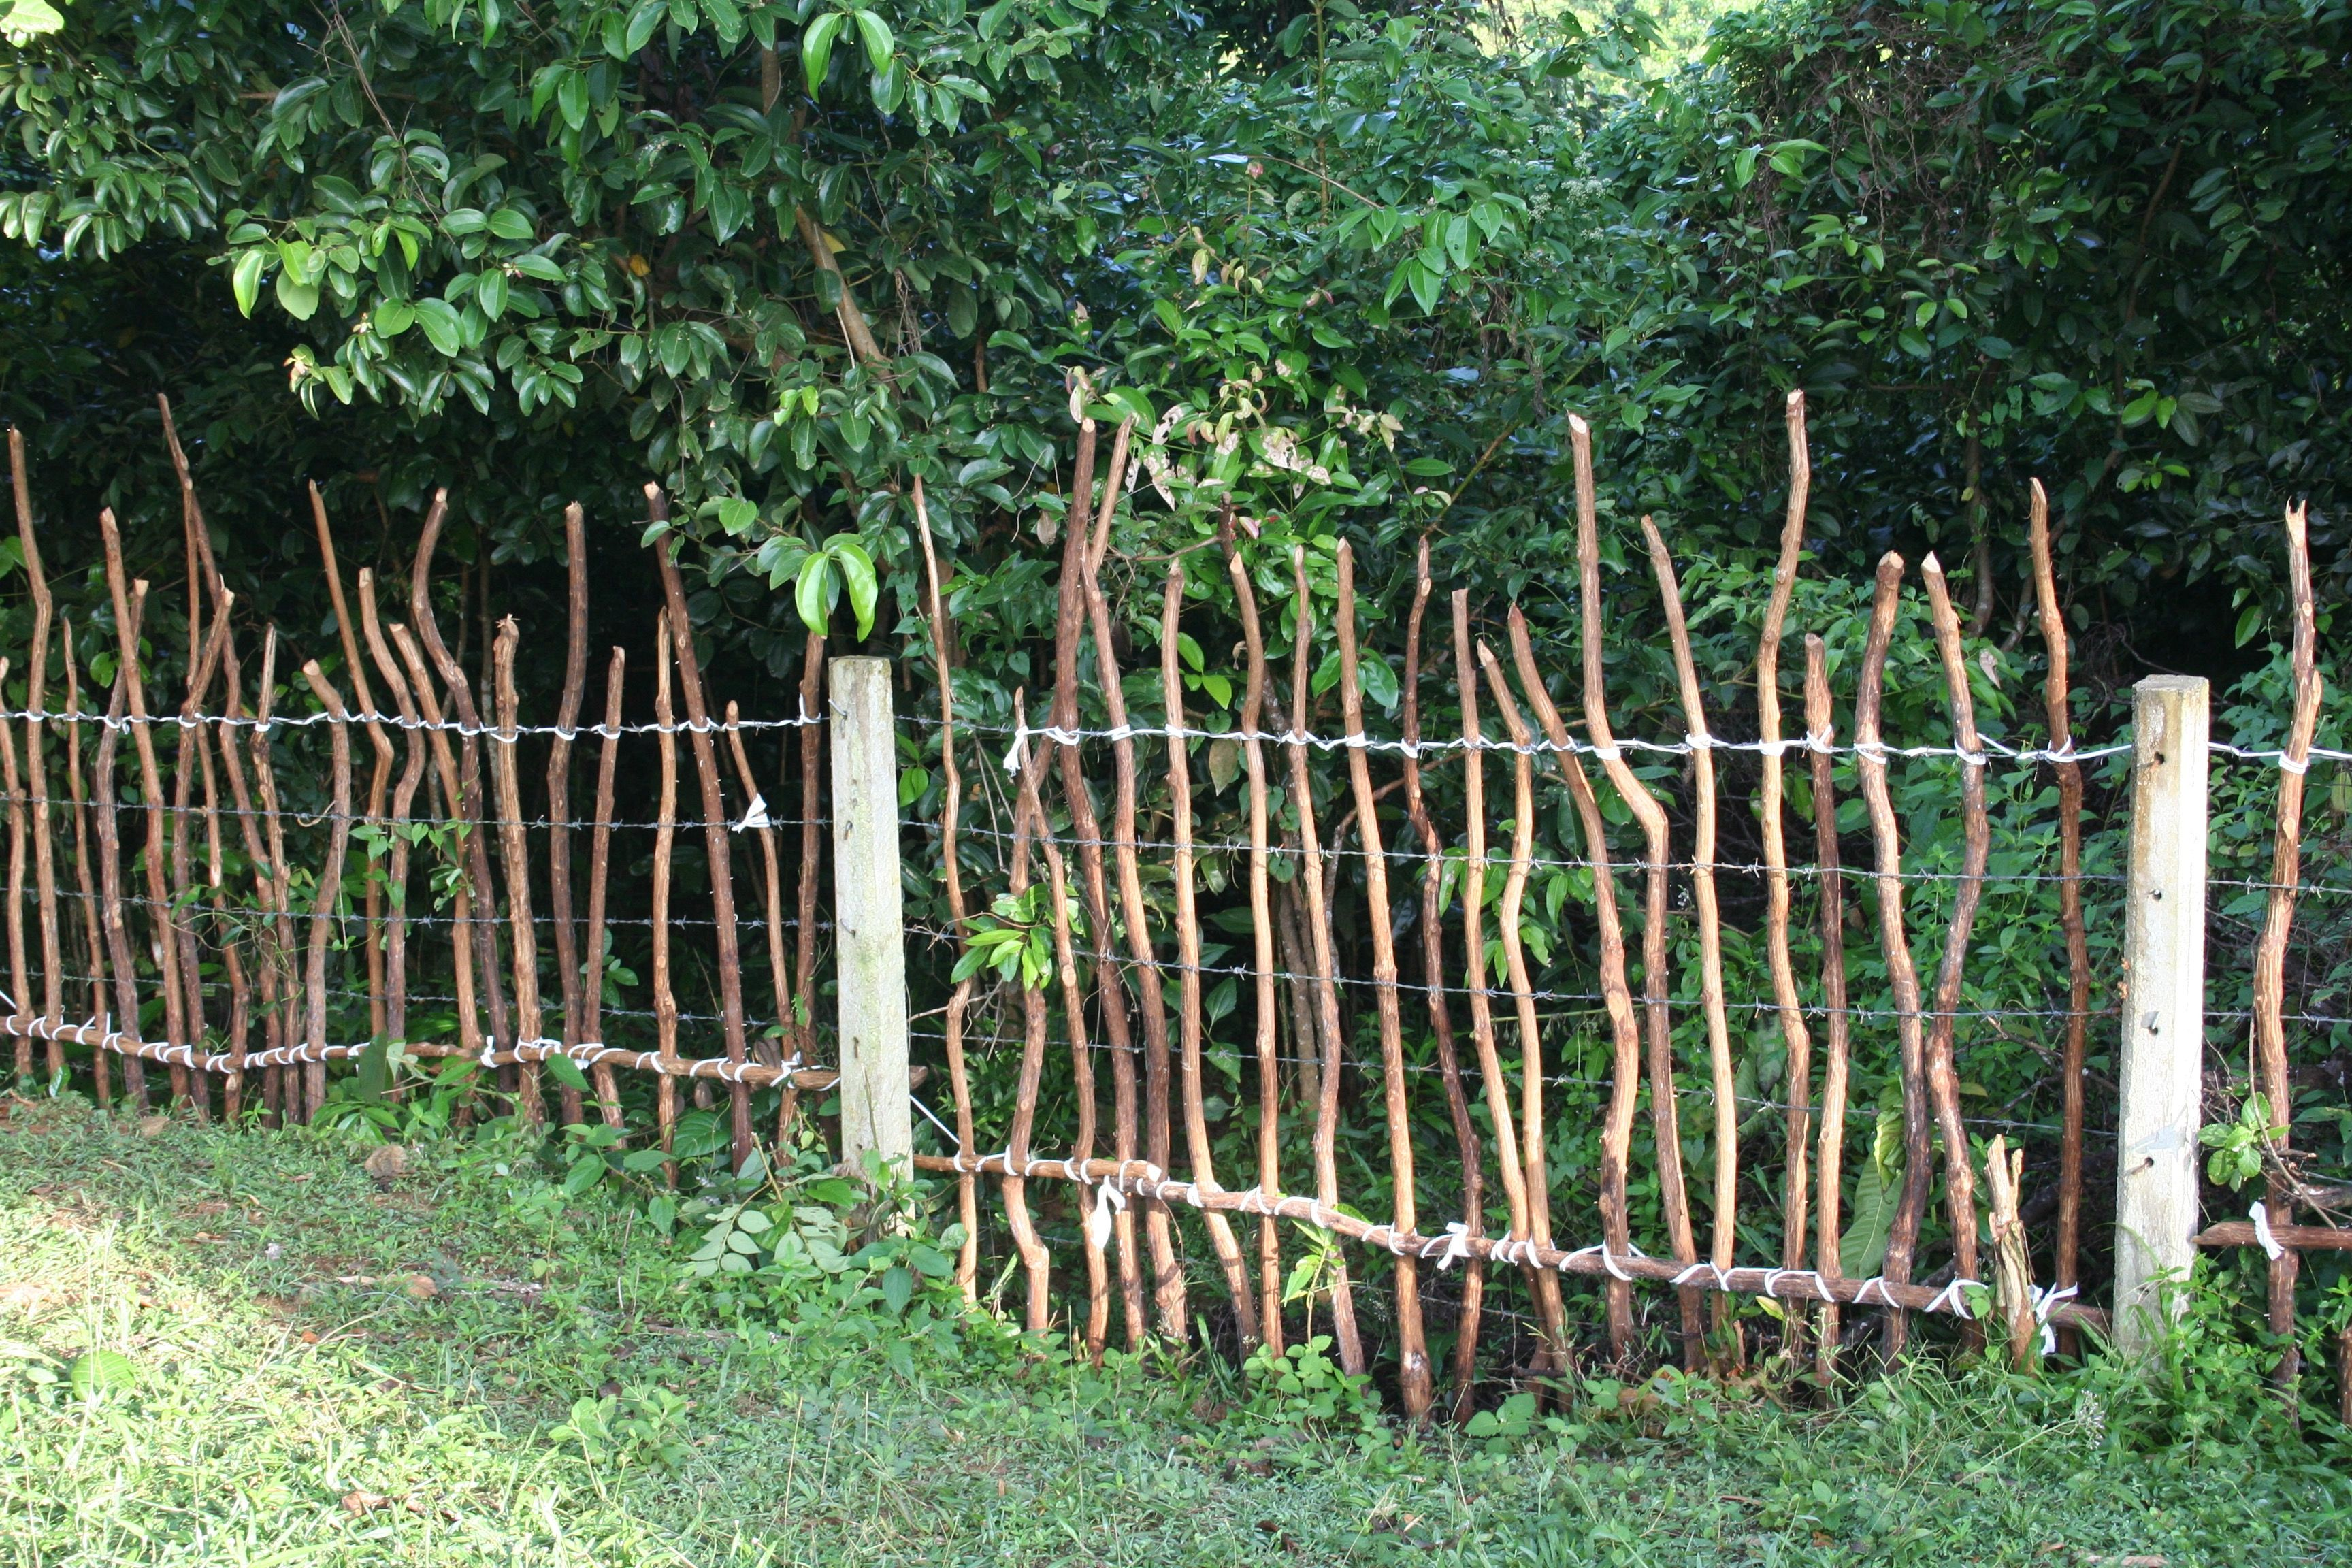 We Reinforce Some Of The Fences With Old Cinnamon Sticks To Keep The Wild Pigs Out